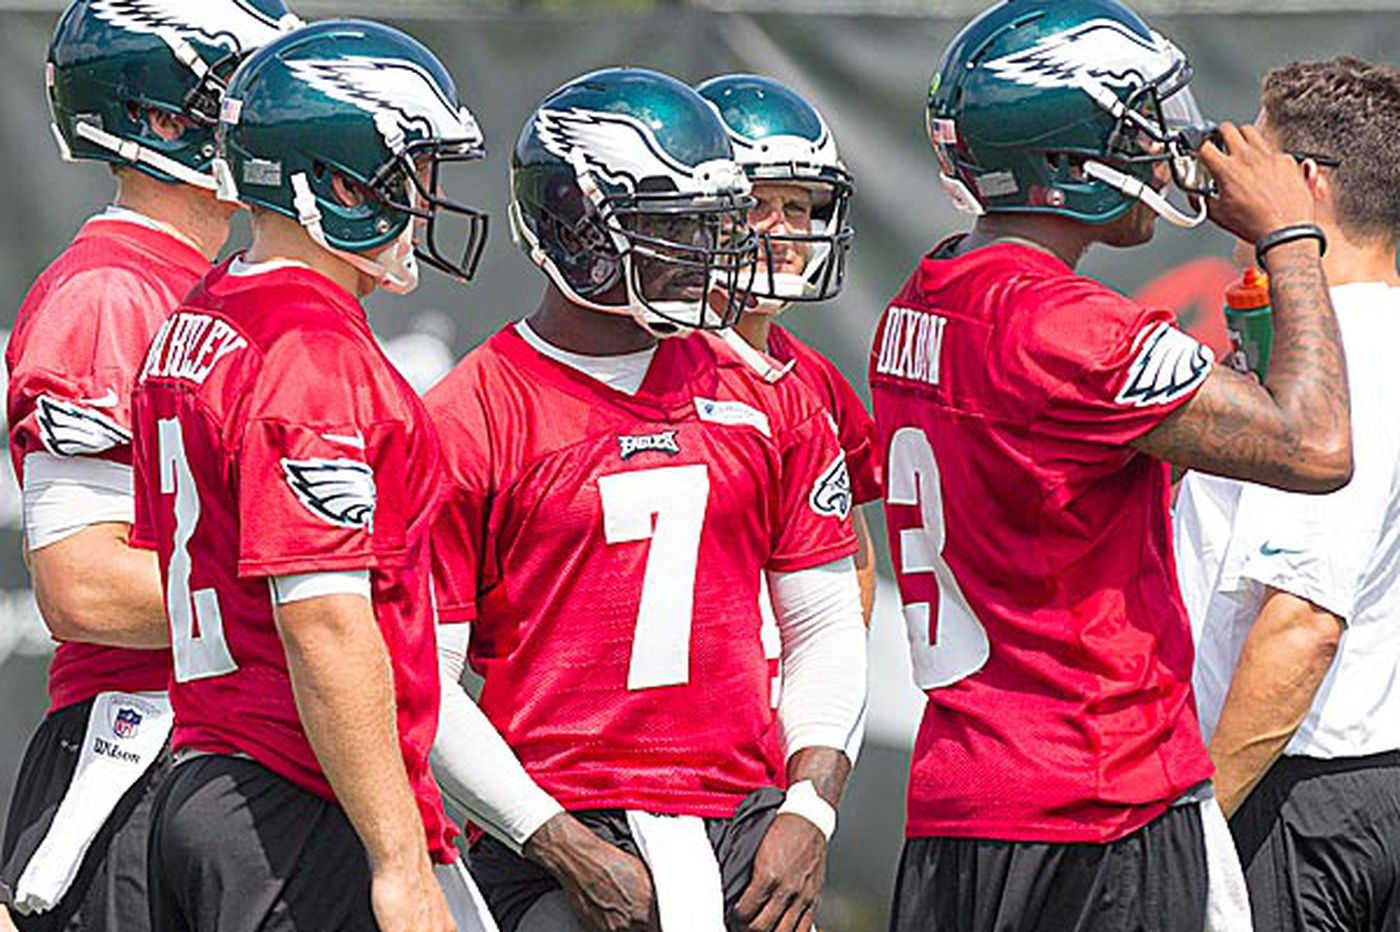 Eagles' Vick diplomatic about job battle